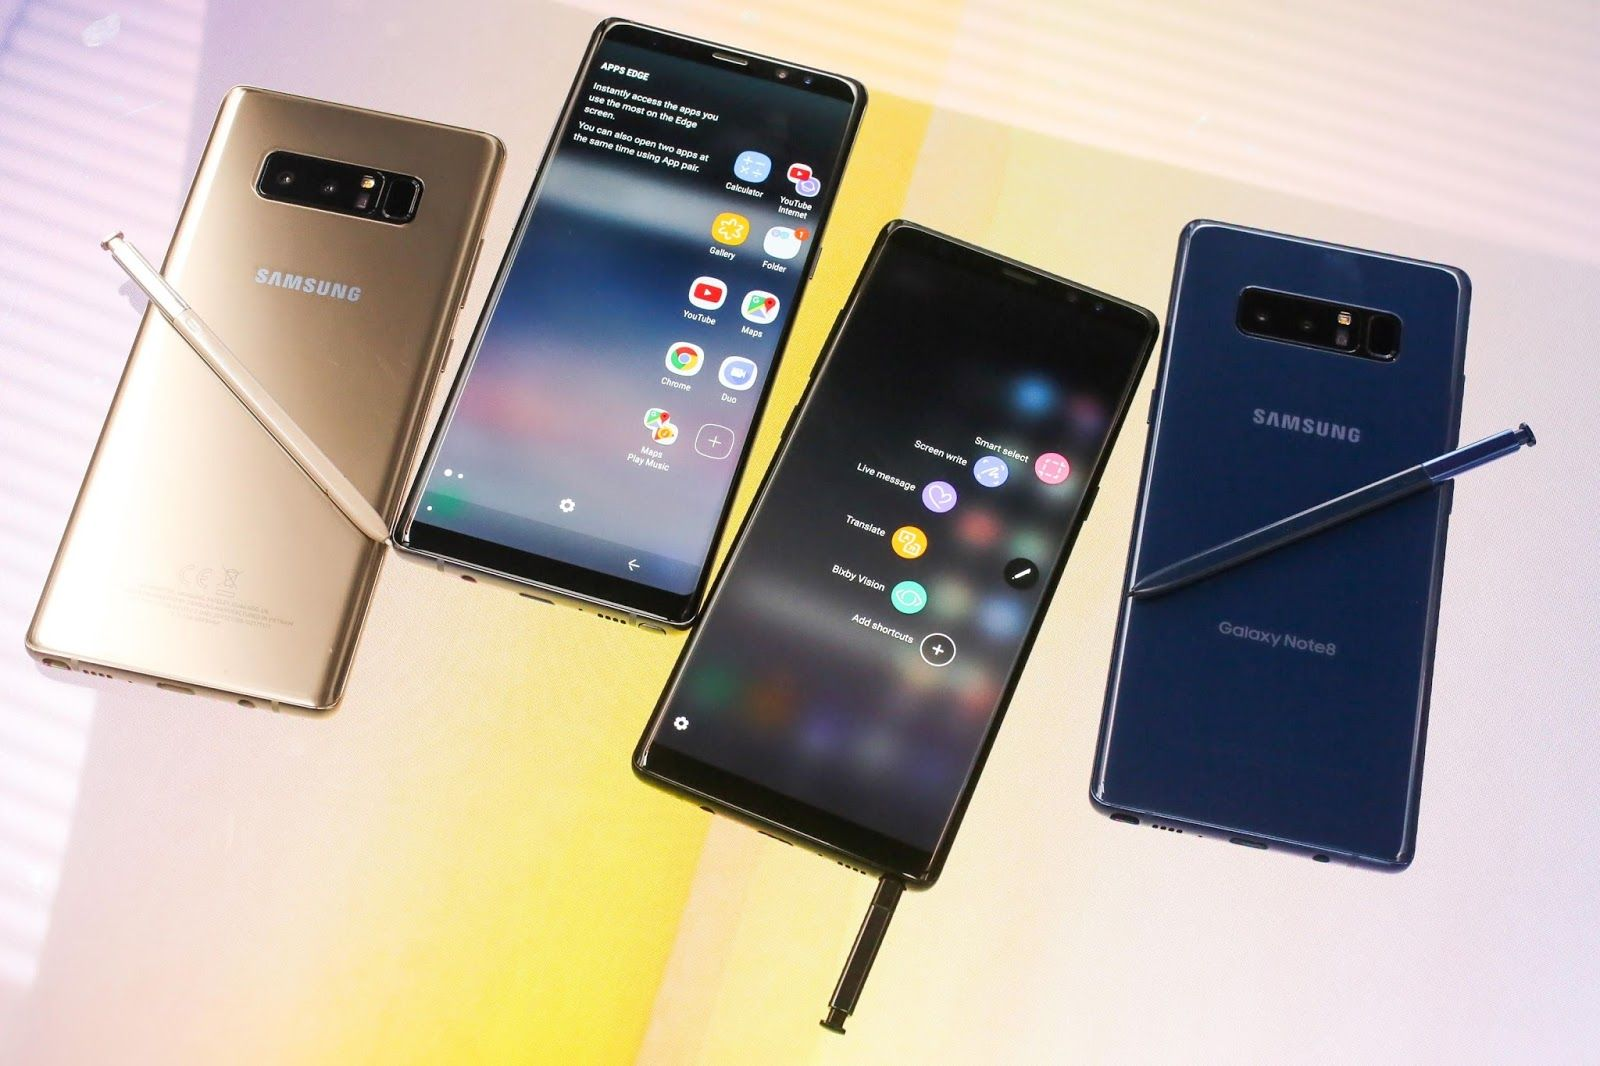 Want to know about Samsung's latest Note 8? A direct